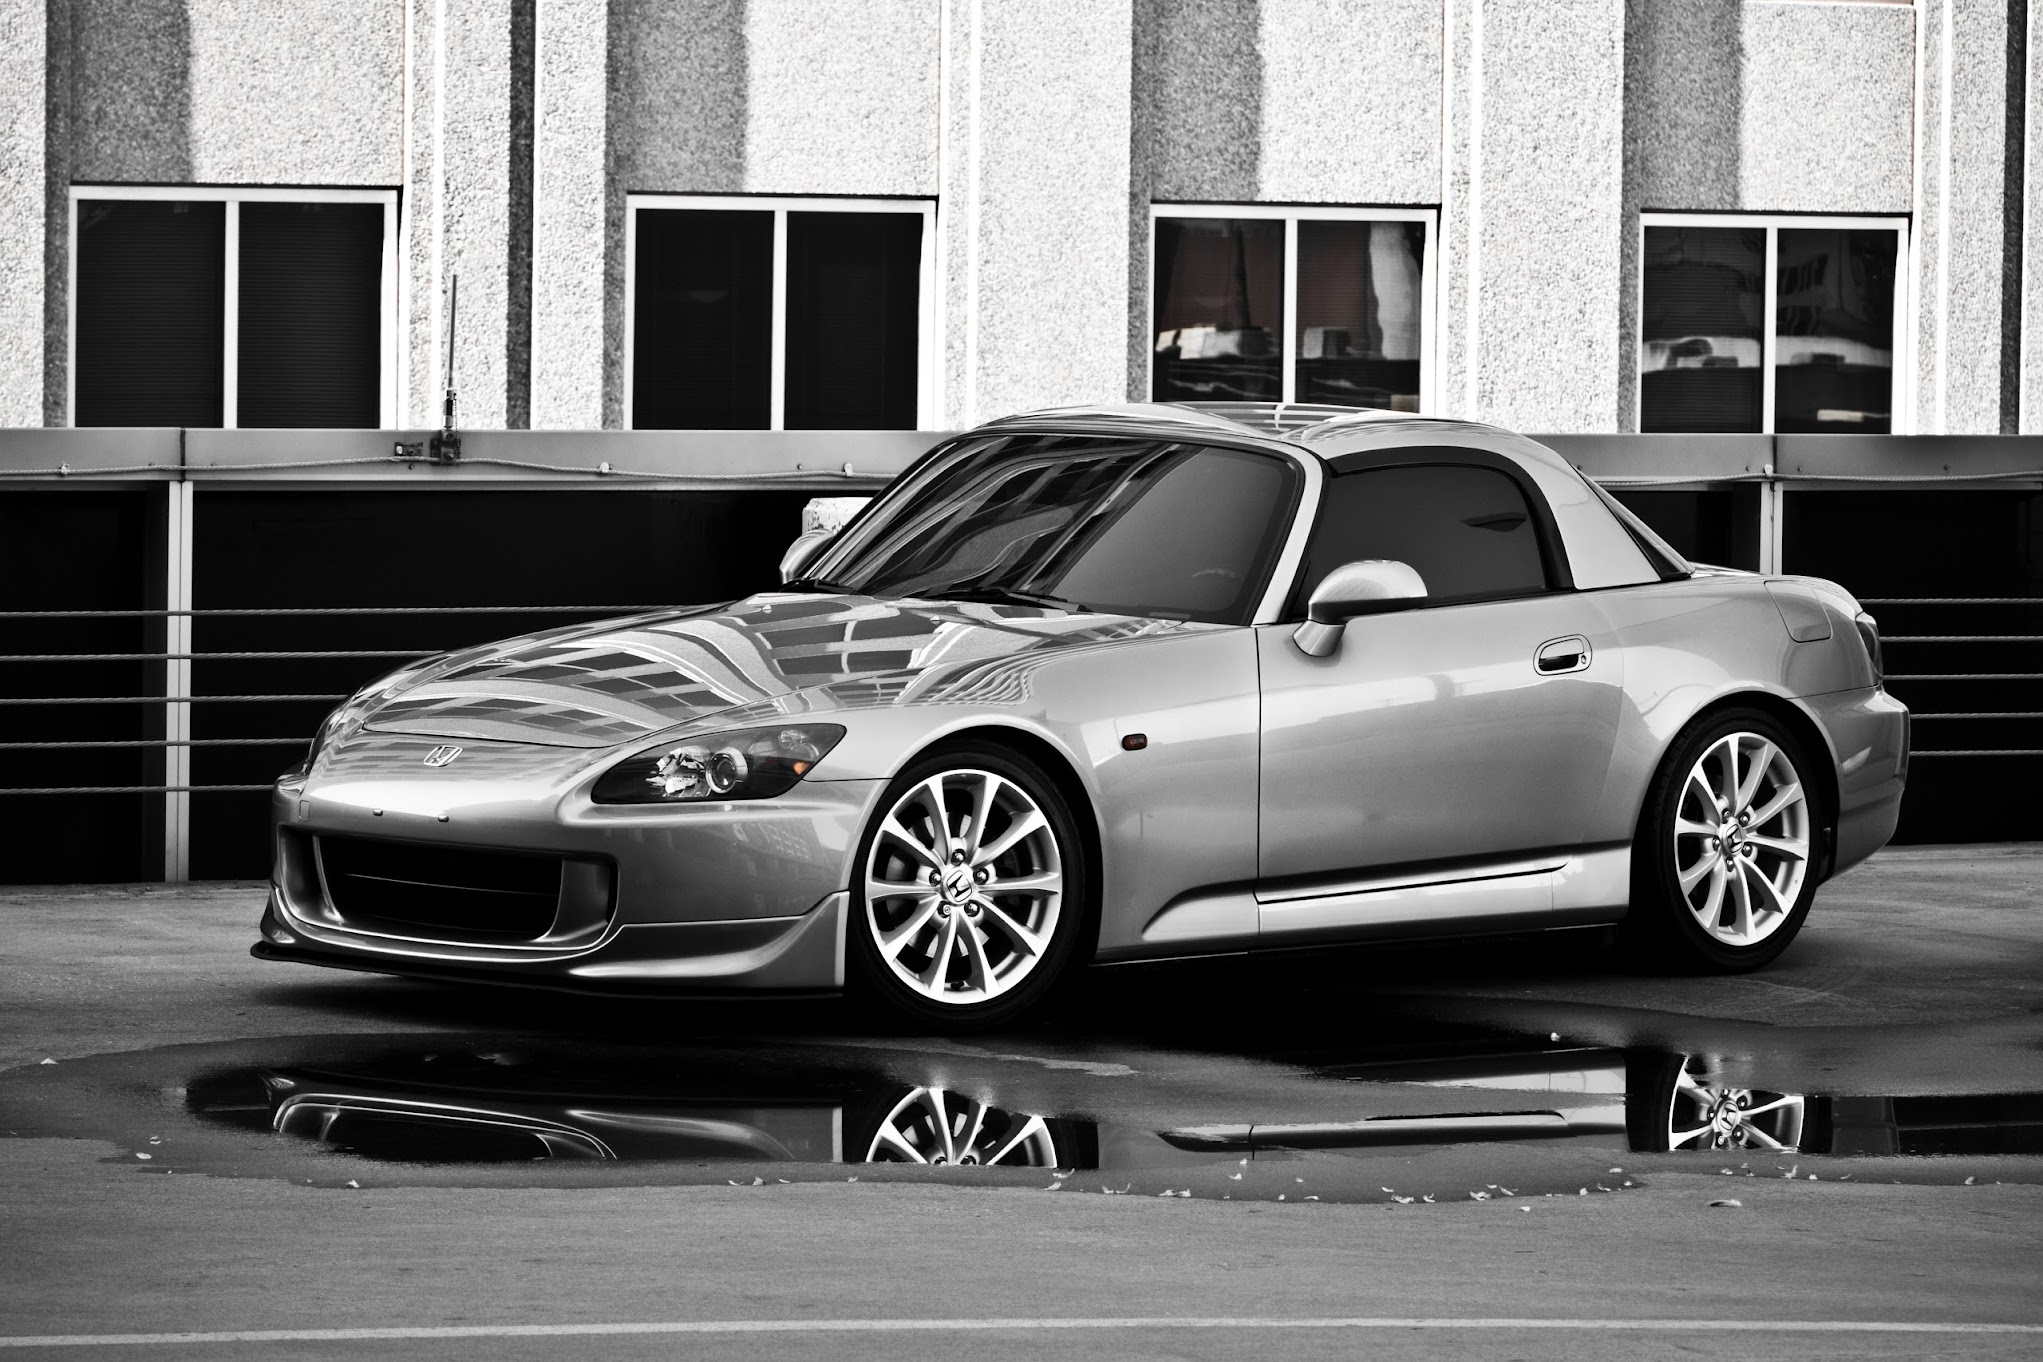 Part Ii Of What Got It All Started S2000 Obsessed